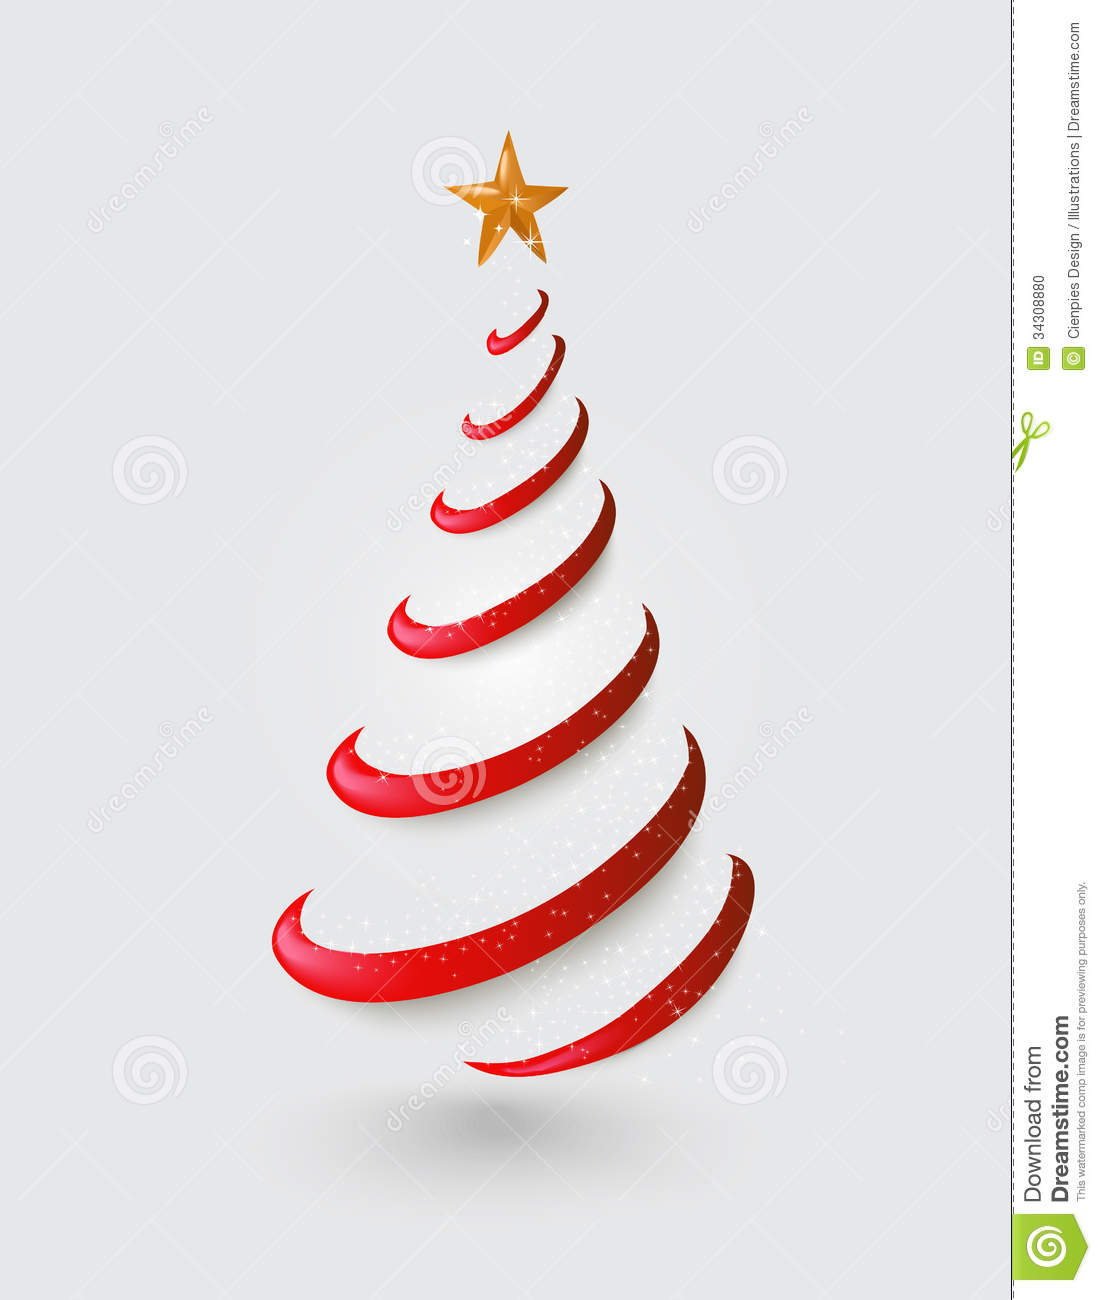 Merry Christmas Abstract Red Tree, Golden Star EPS Stock Photo ...